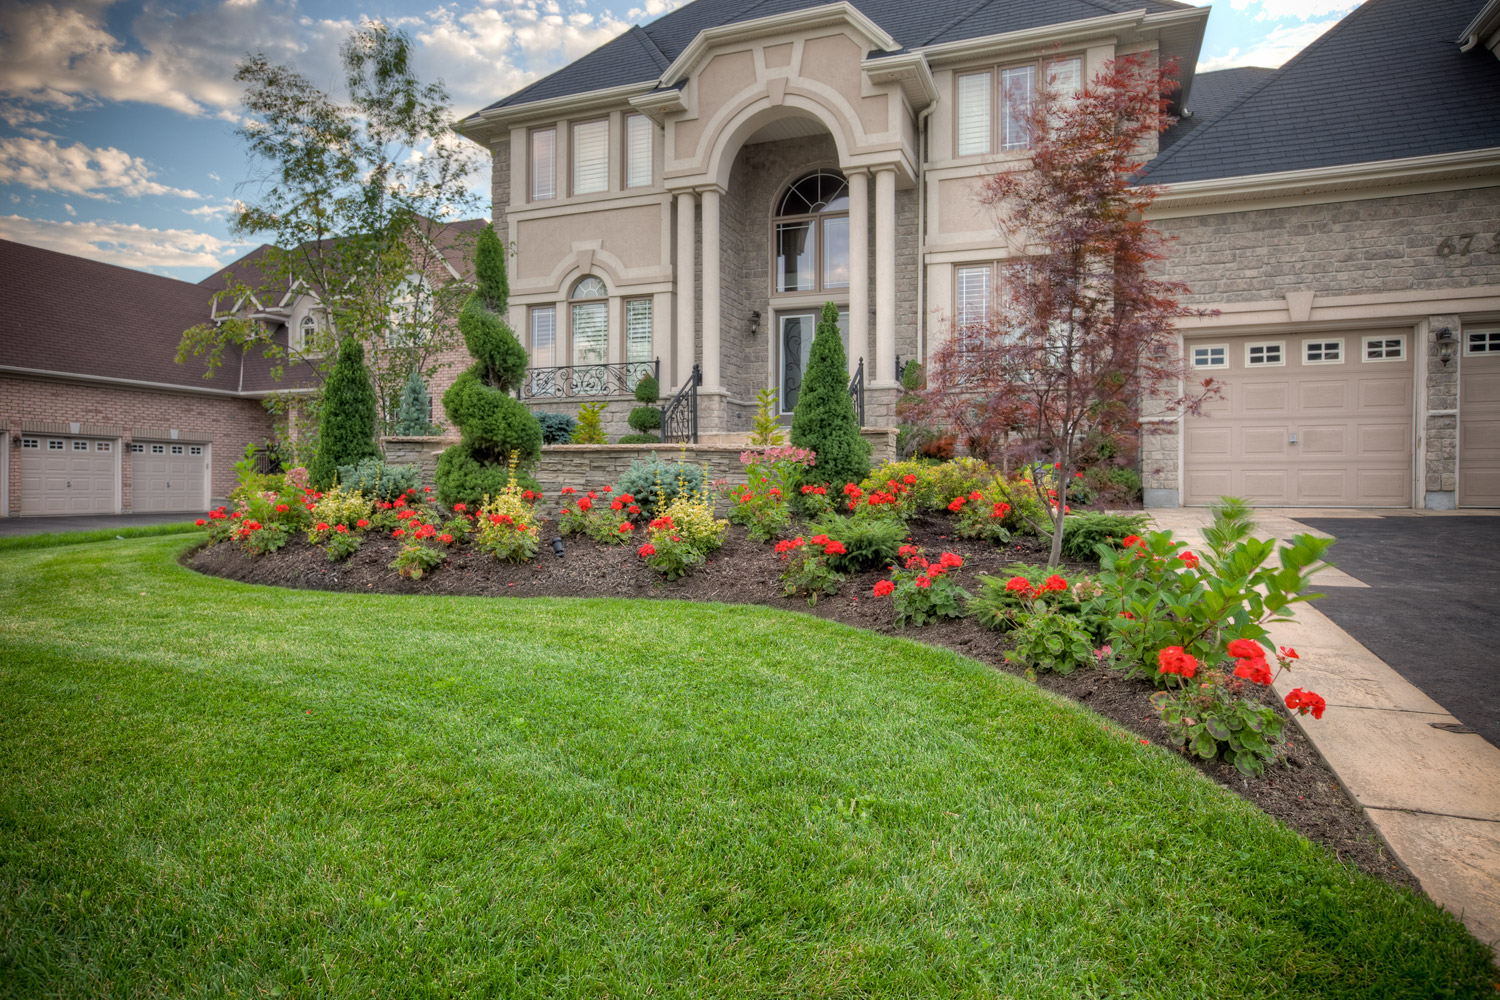 Some ideas of front yard landscaping for a small front for Home front landscaping